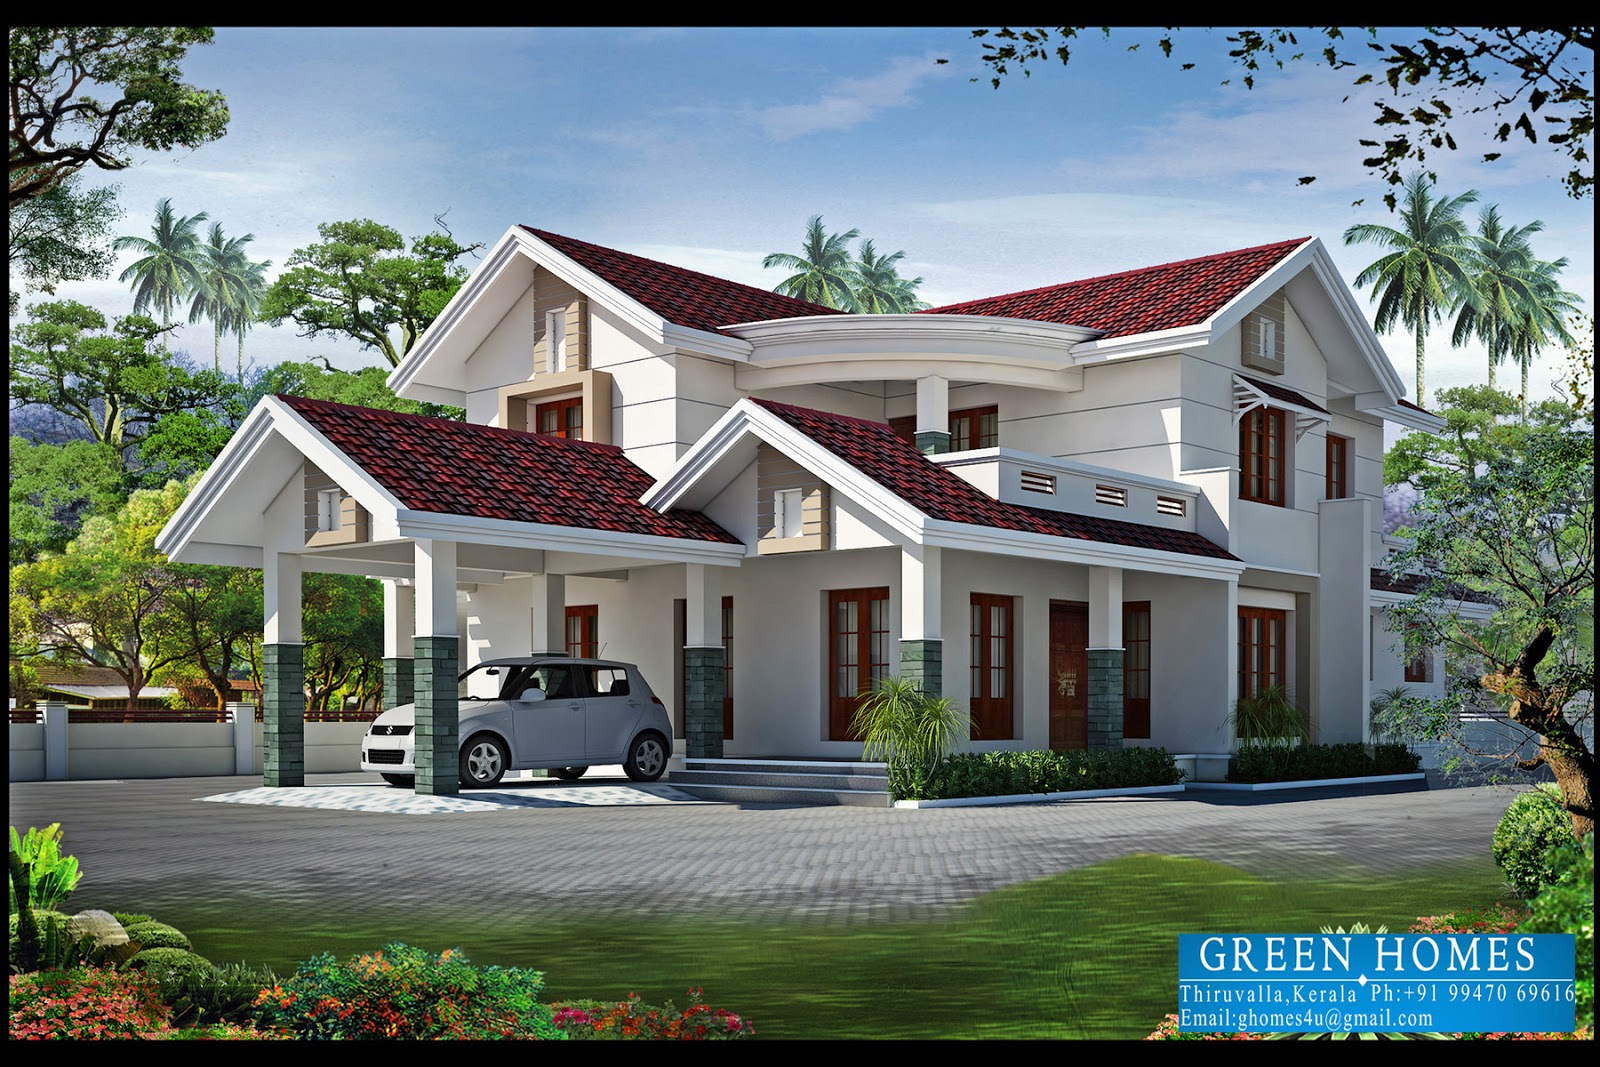 Green homes december 2012 for New houses in kerala